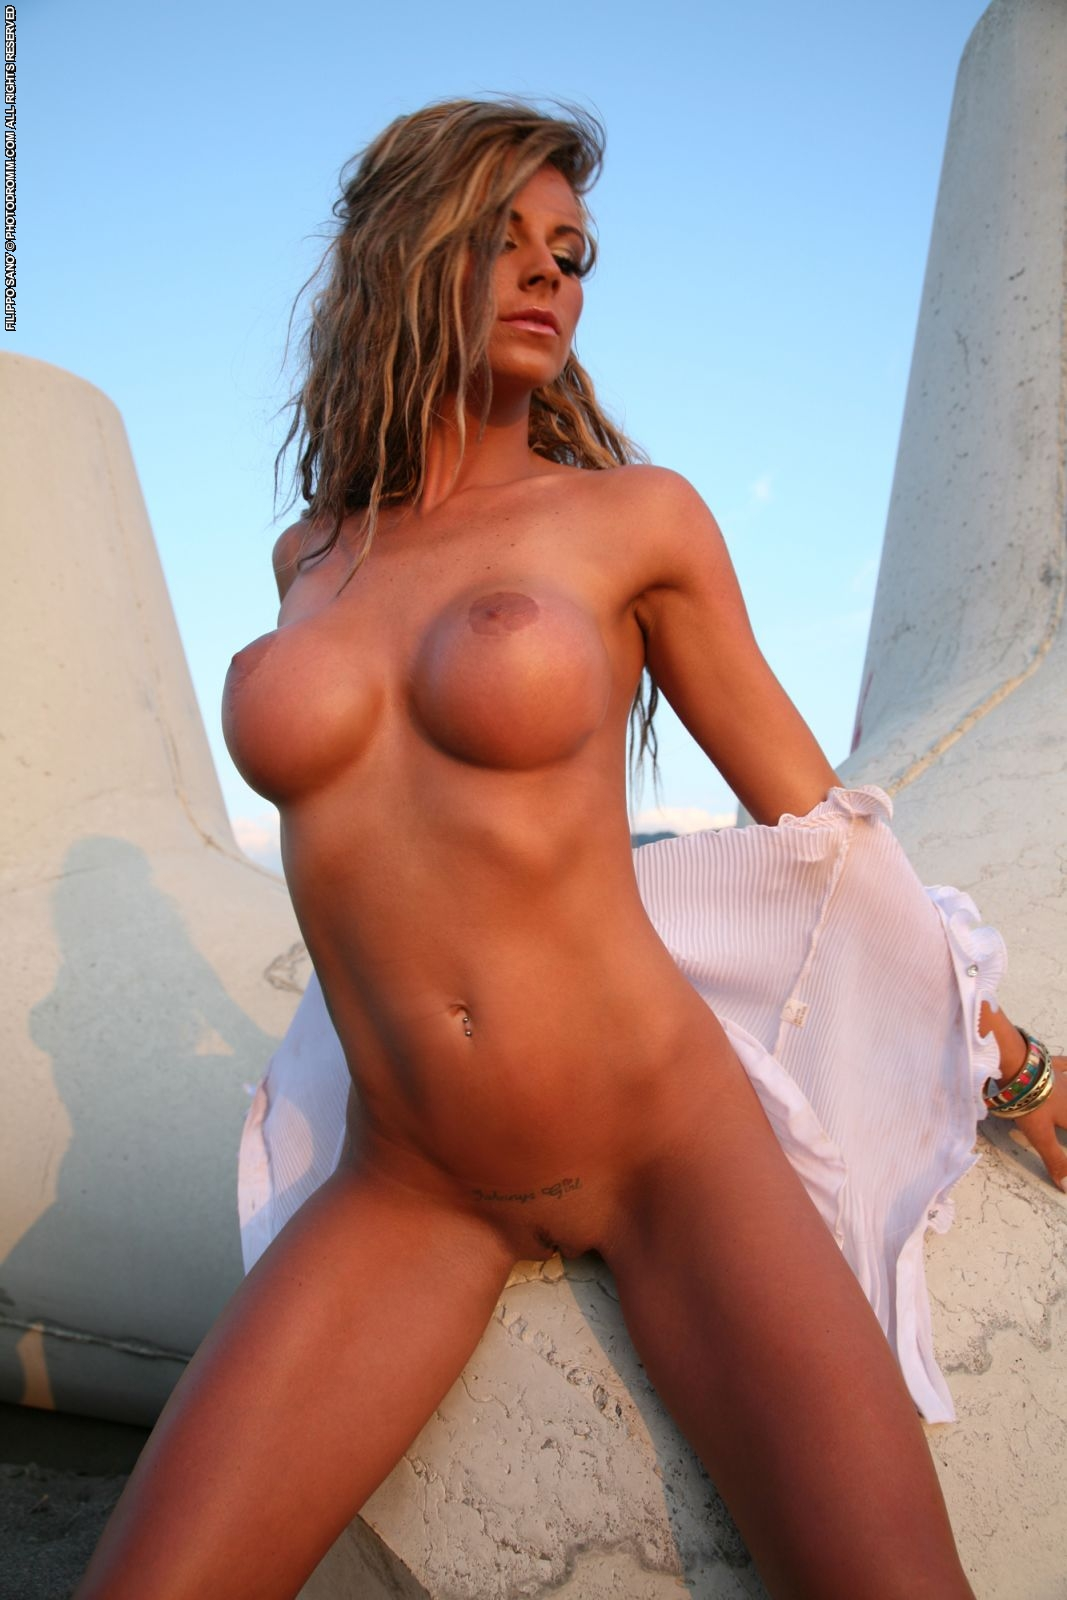 Photodromm - 2010-01-27 - JODIE - WHITE 2 - Nude Ass Pussy ...